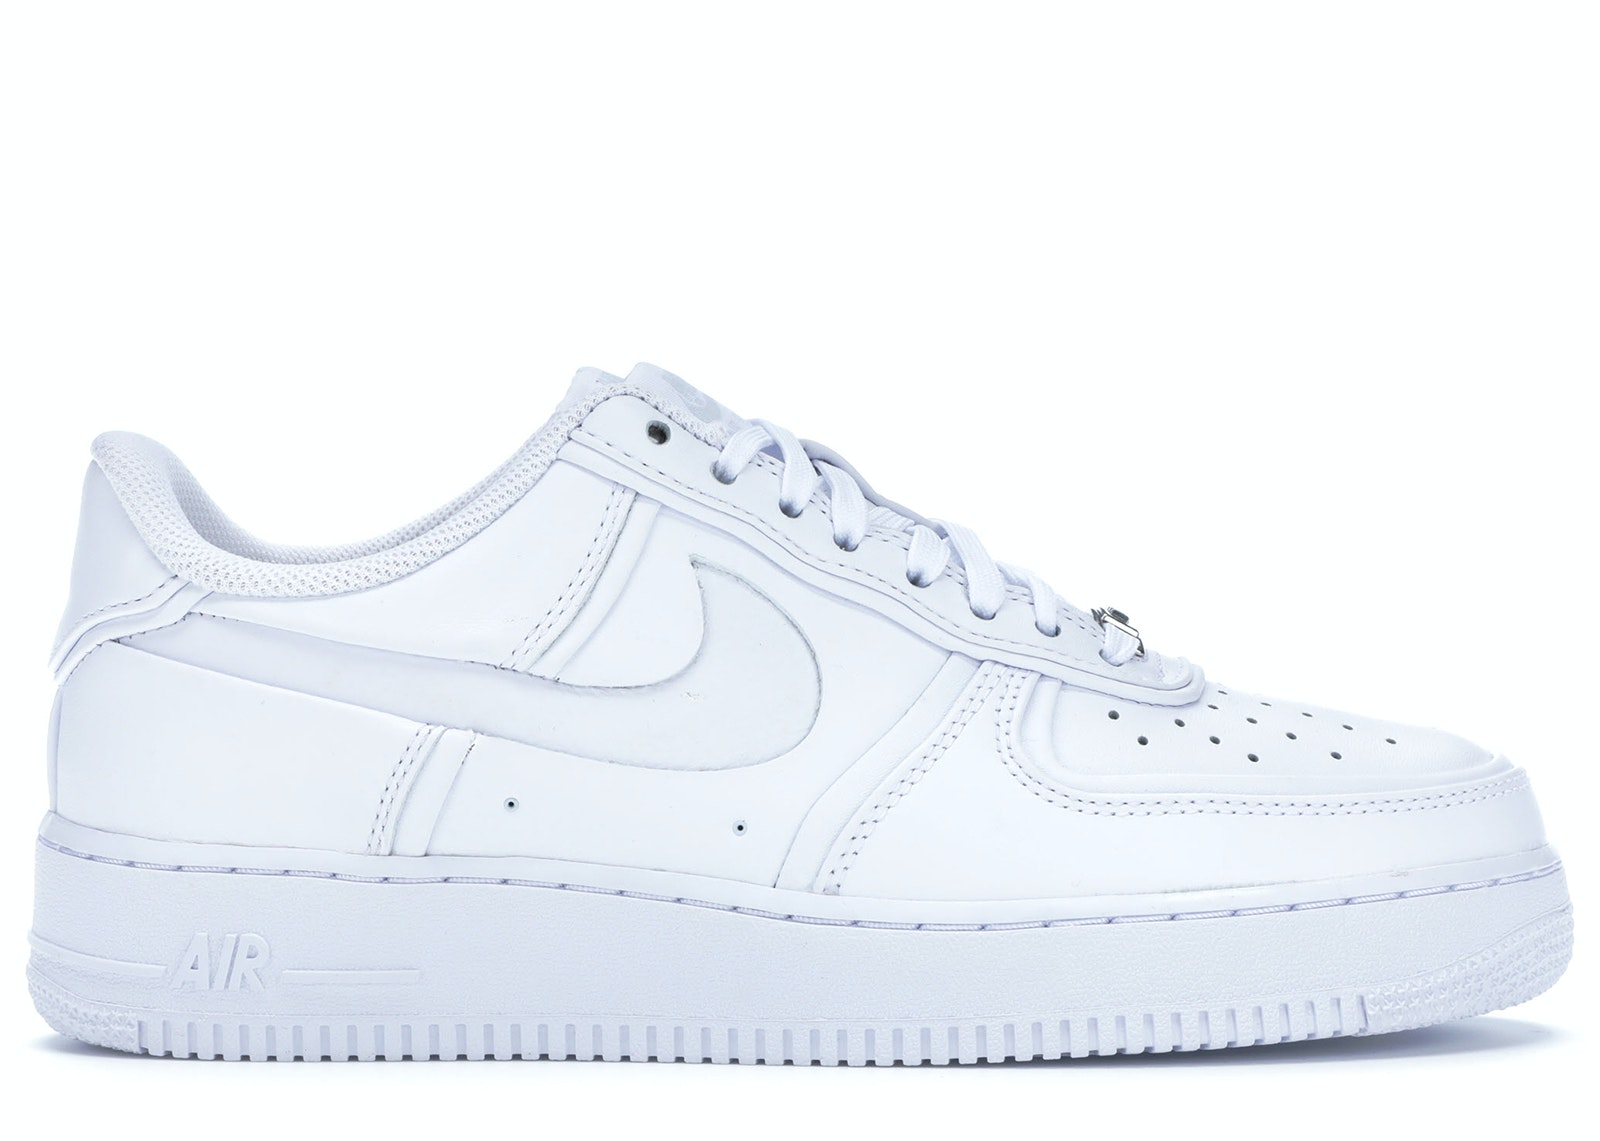 Air Force 1 Low John Elliott White